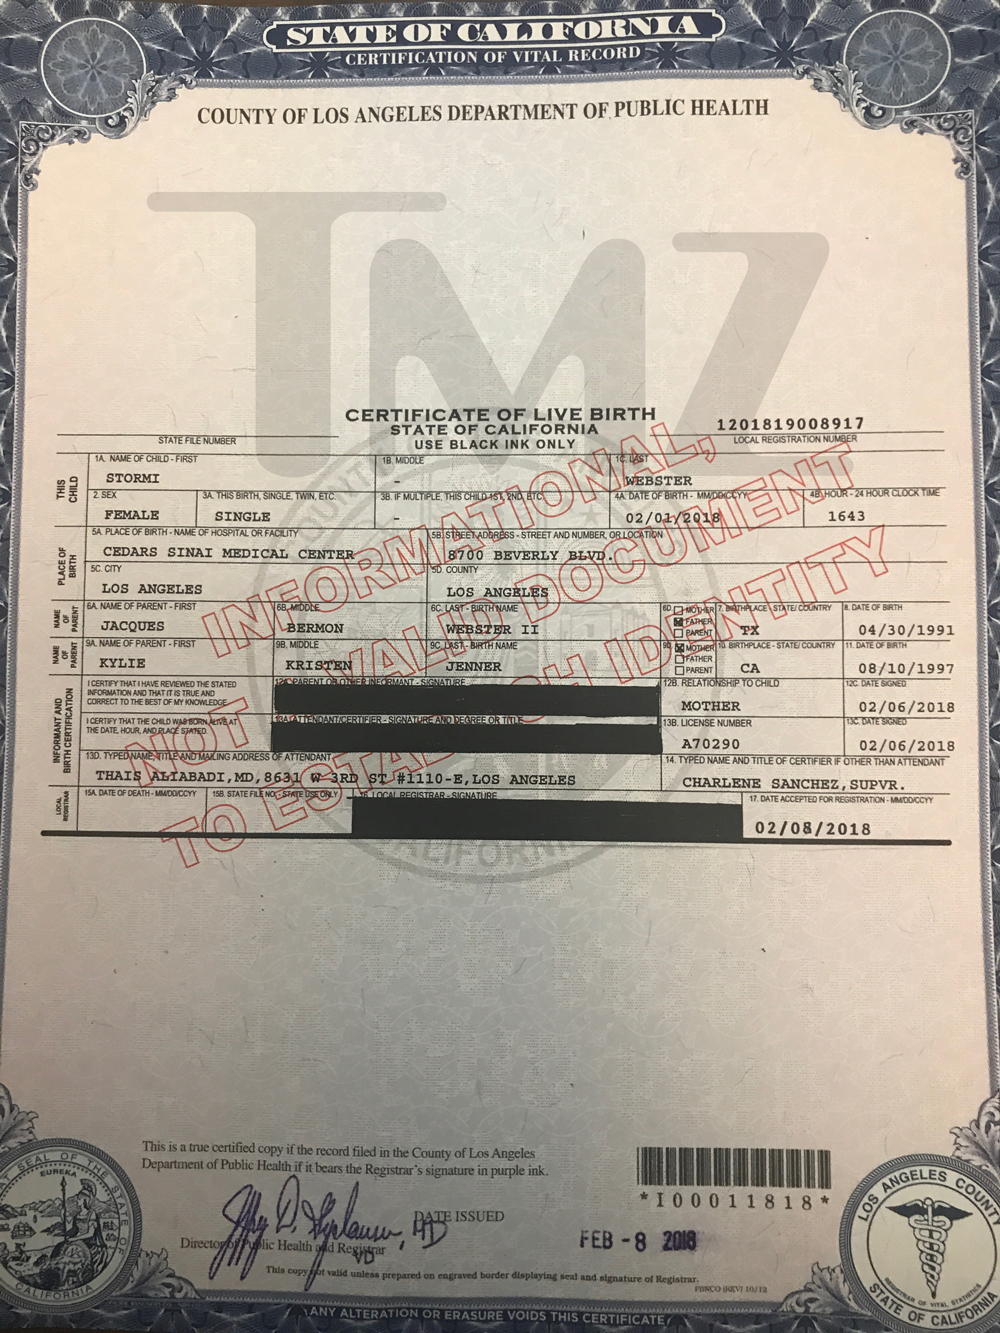 Stormi Websters Birth Certificate Released Tmz